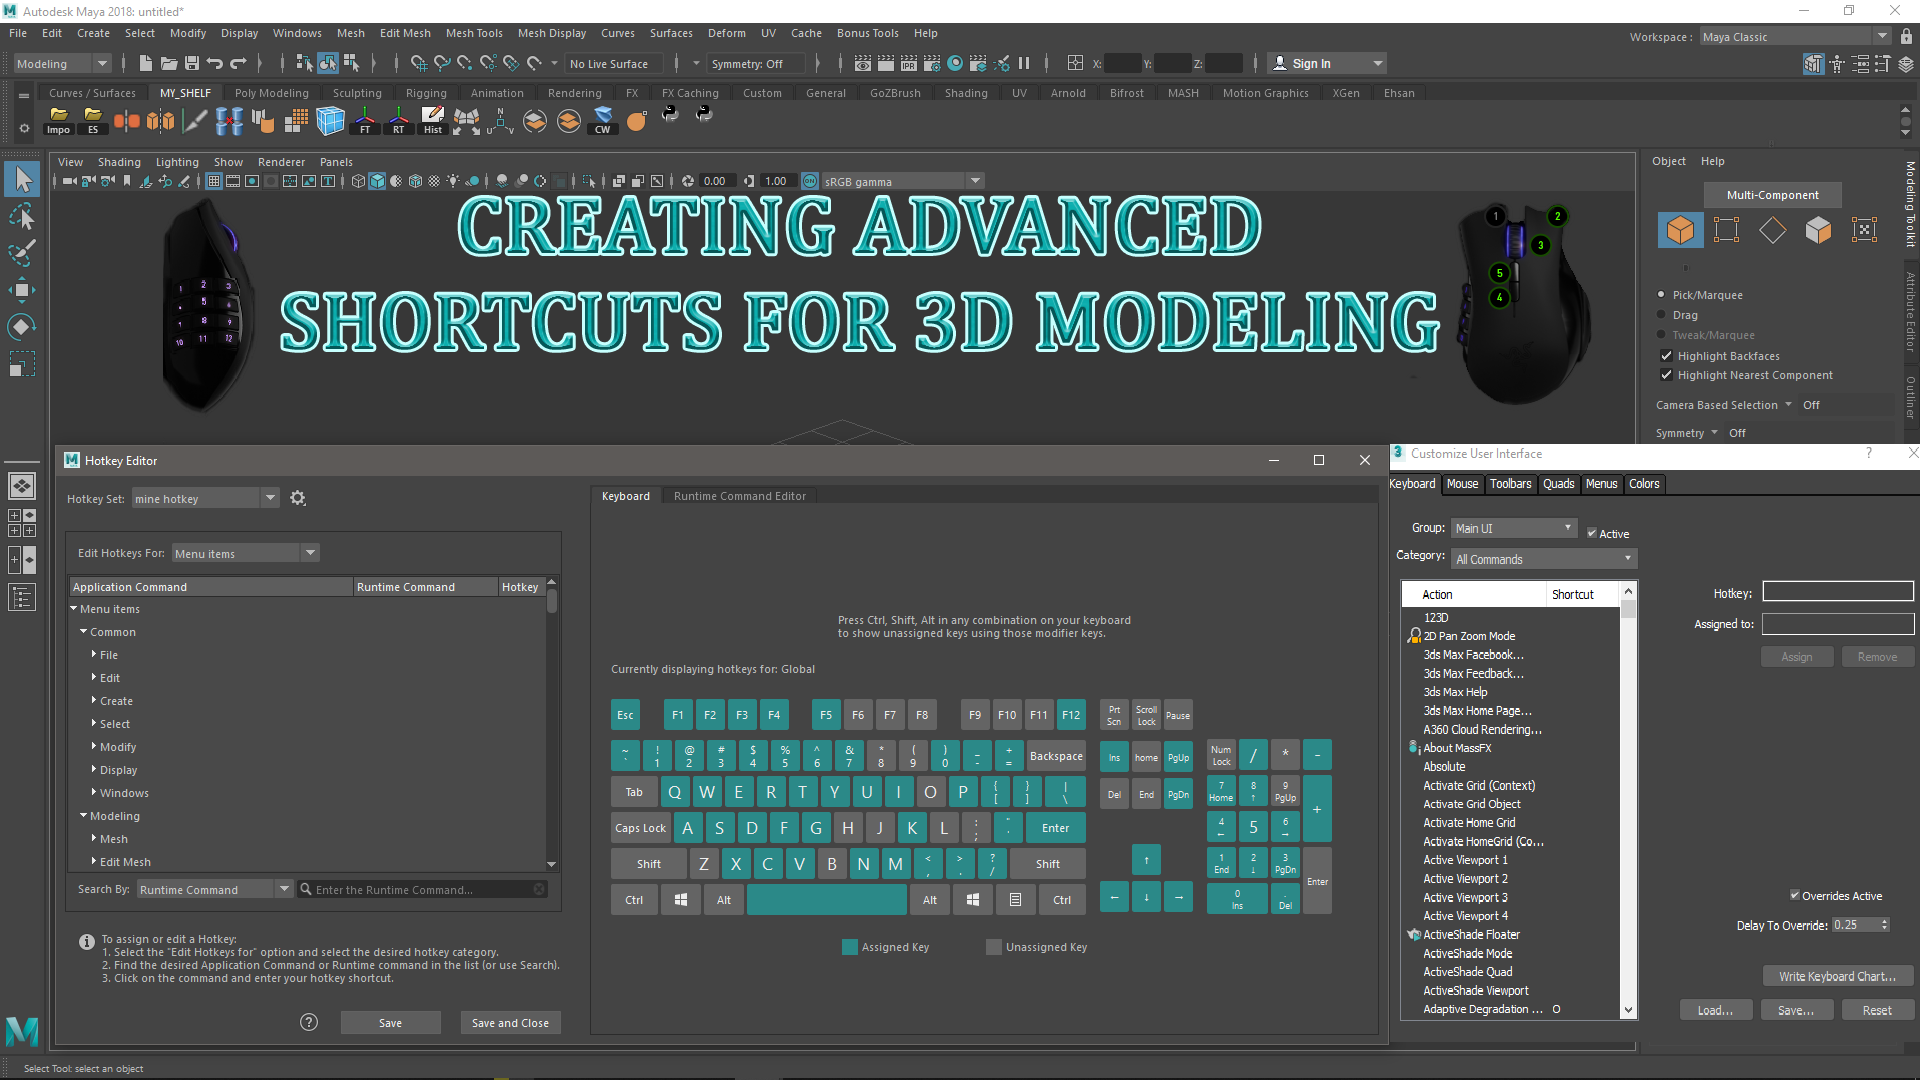 CREATING ADVANCED SHORTCUTS FOR 3D MODELING